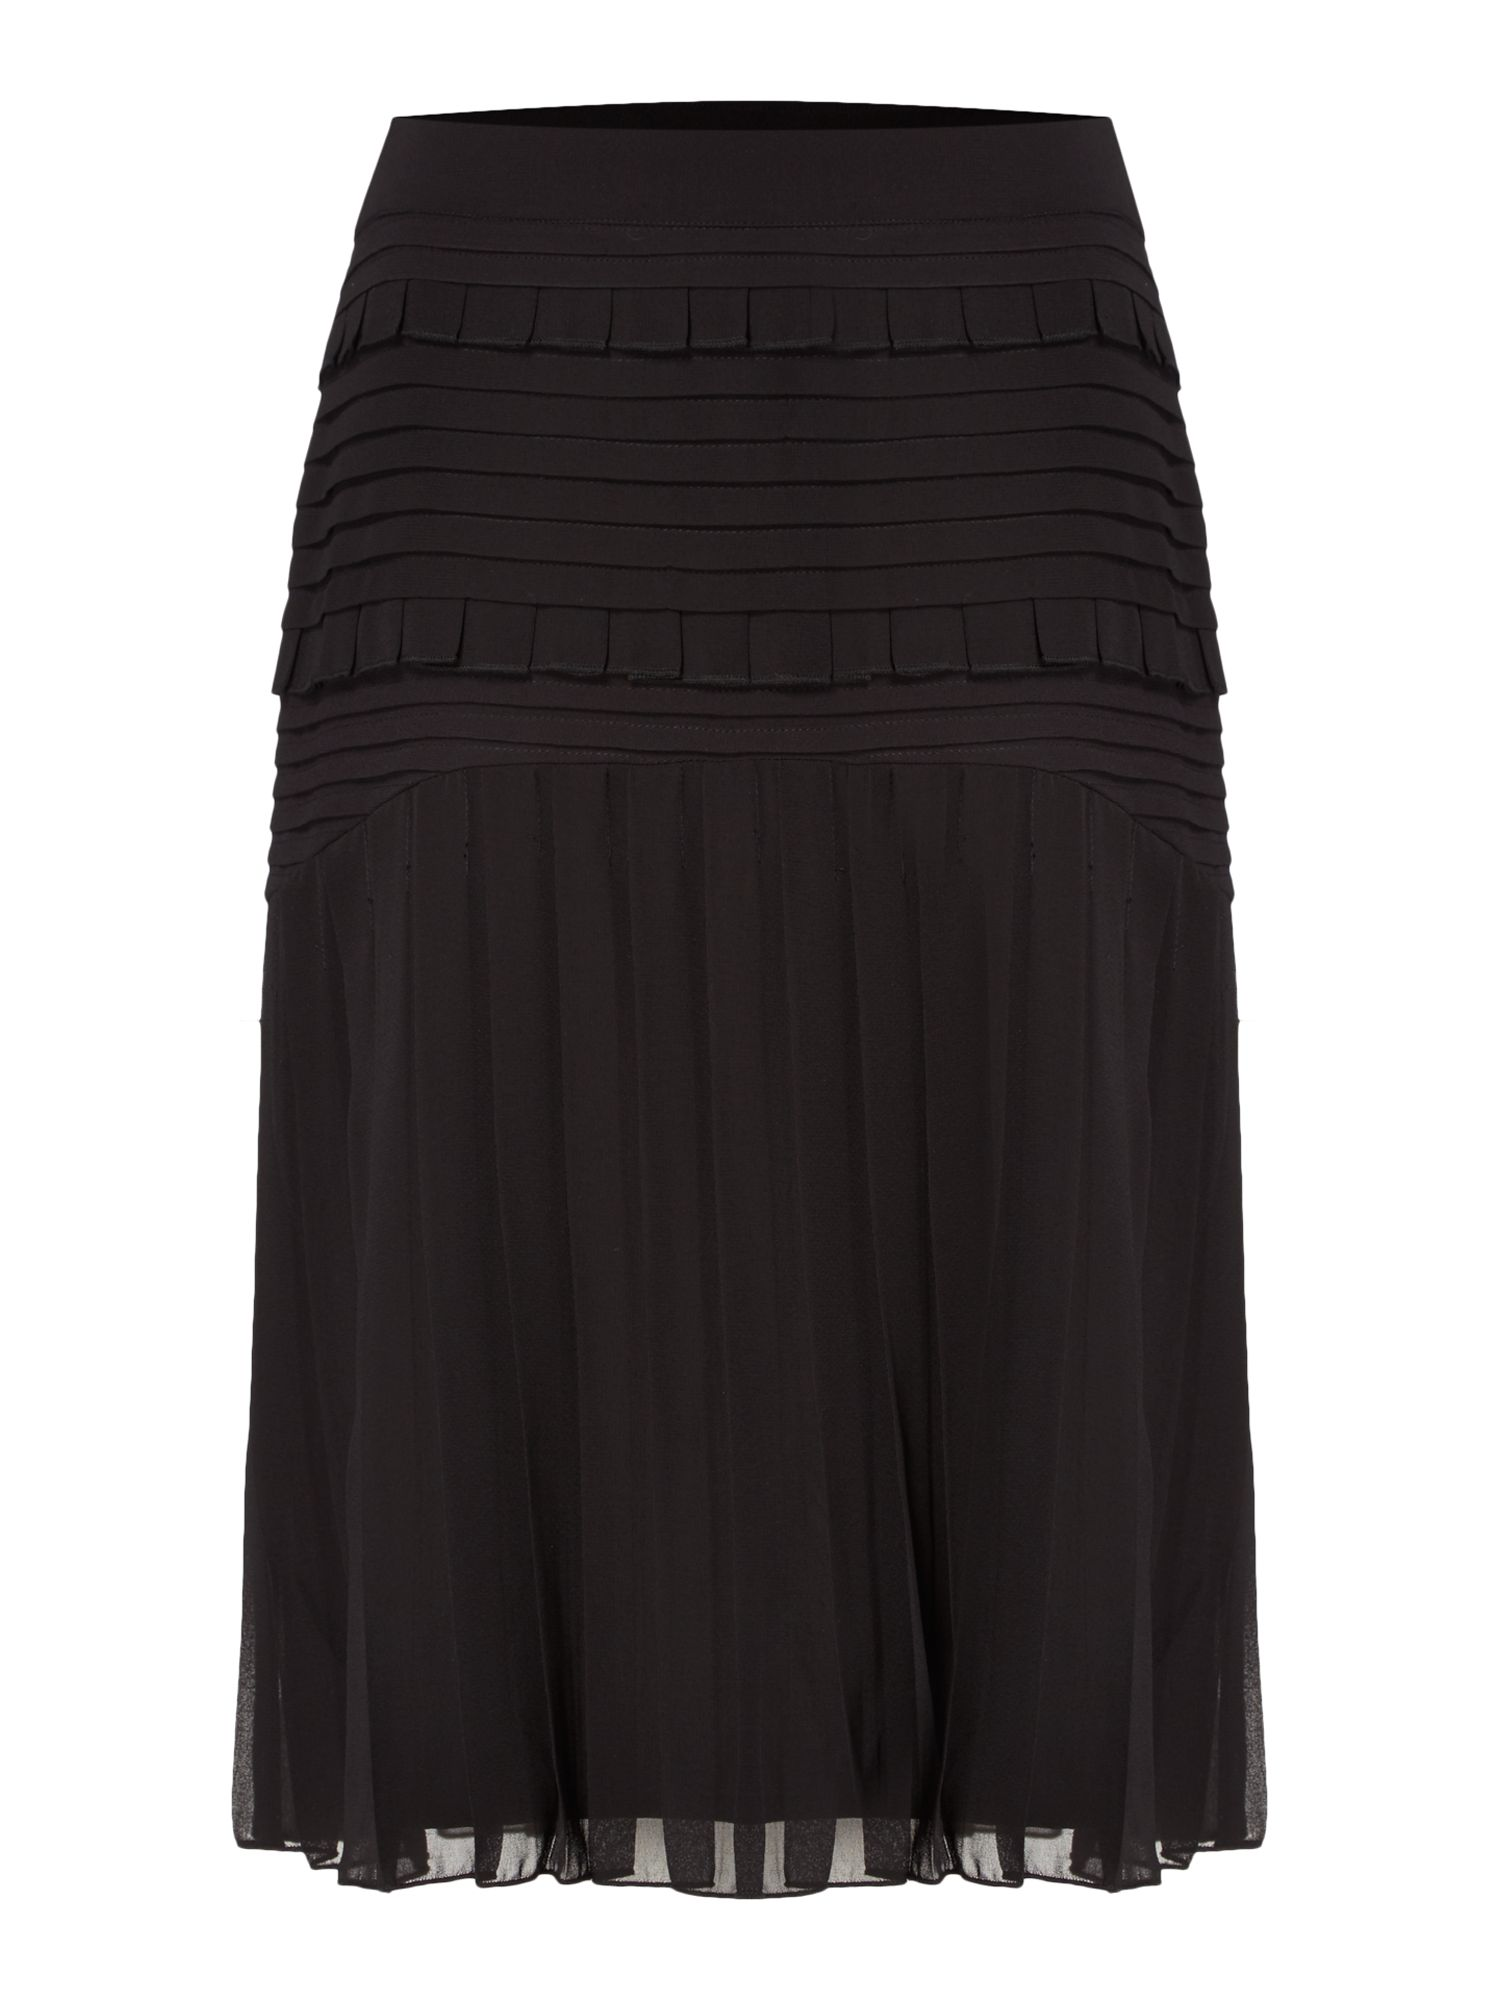 Biba Pleat and ruffle detail skirt, Black